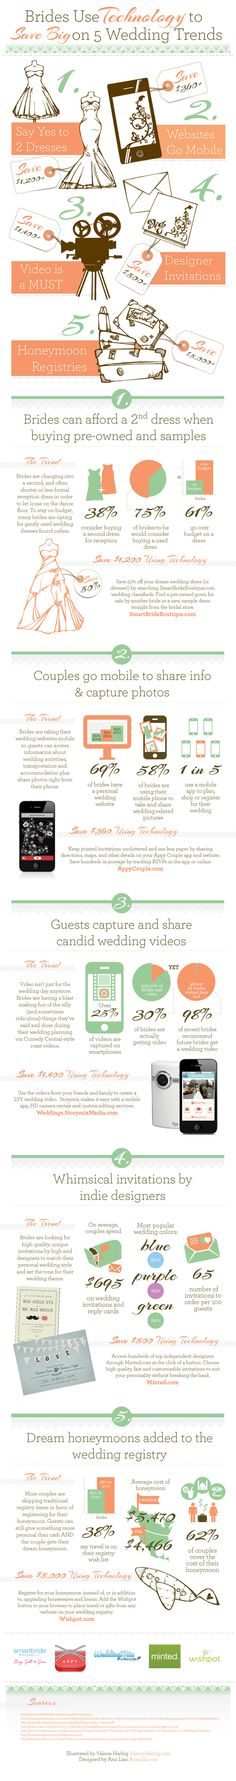 There are certainly other ways your can use technology to plan your wedding. Here are a couple of infographics via Story Mix Media for your personal Pinterest board to keep as references.